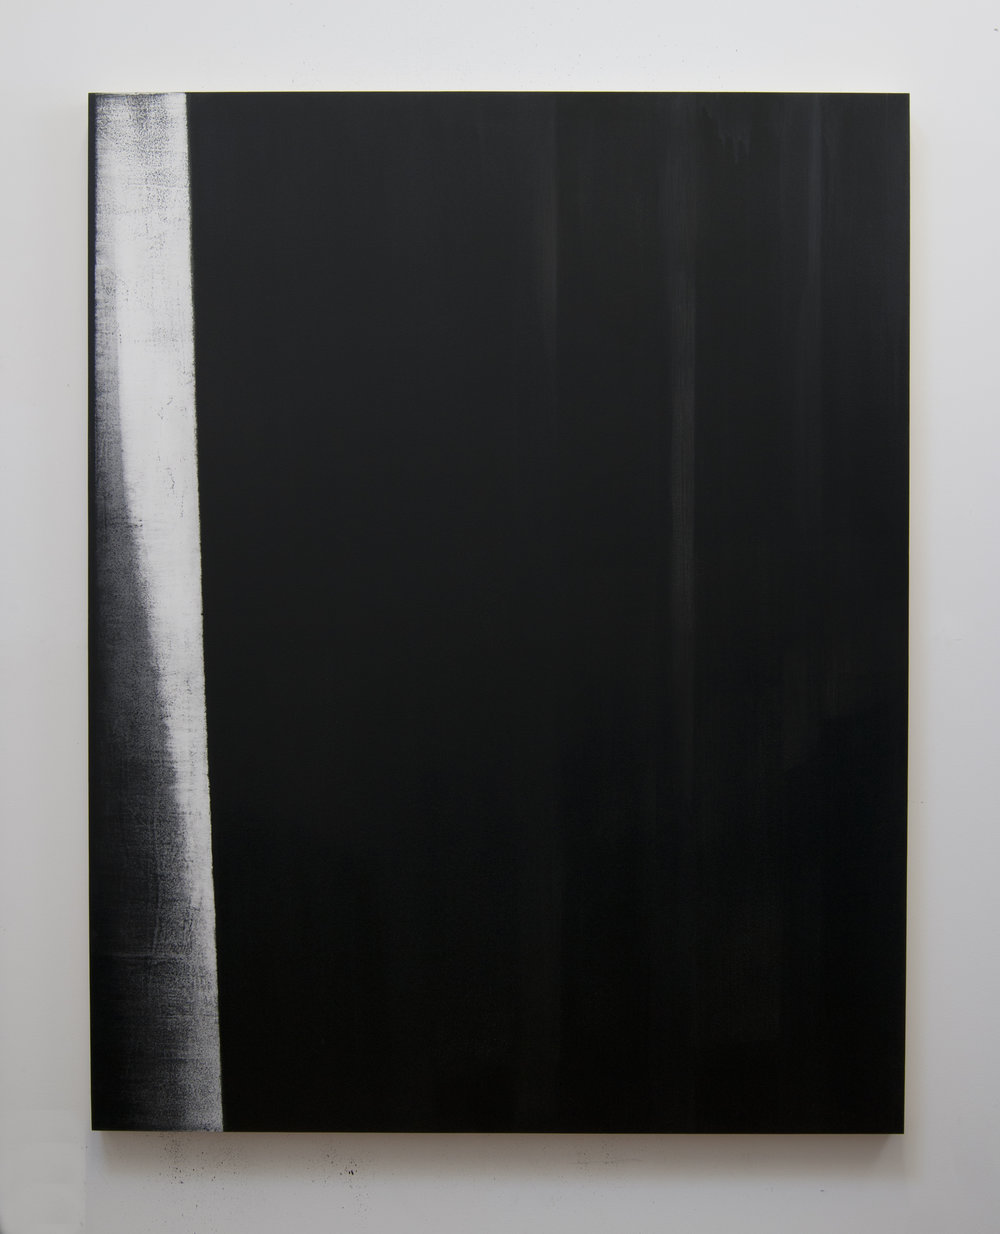 Fugitive VII, 2012  Acrylic on panel, 56 x 44 inches